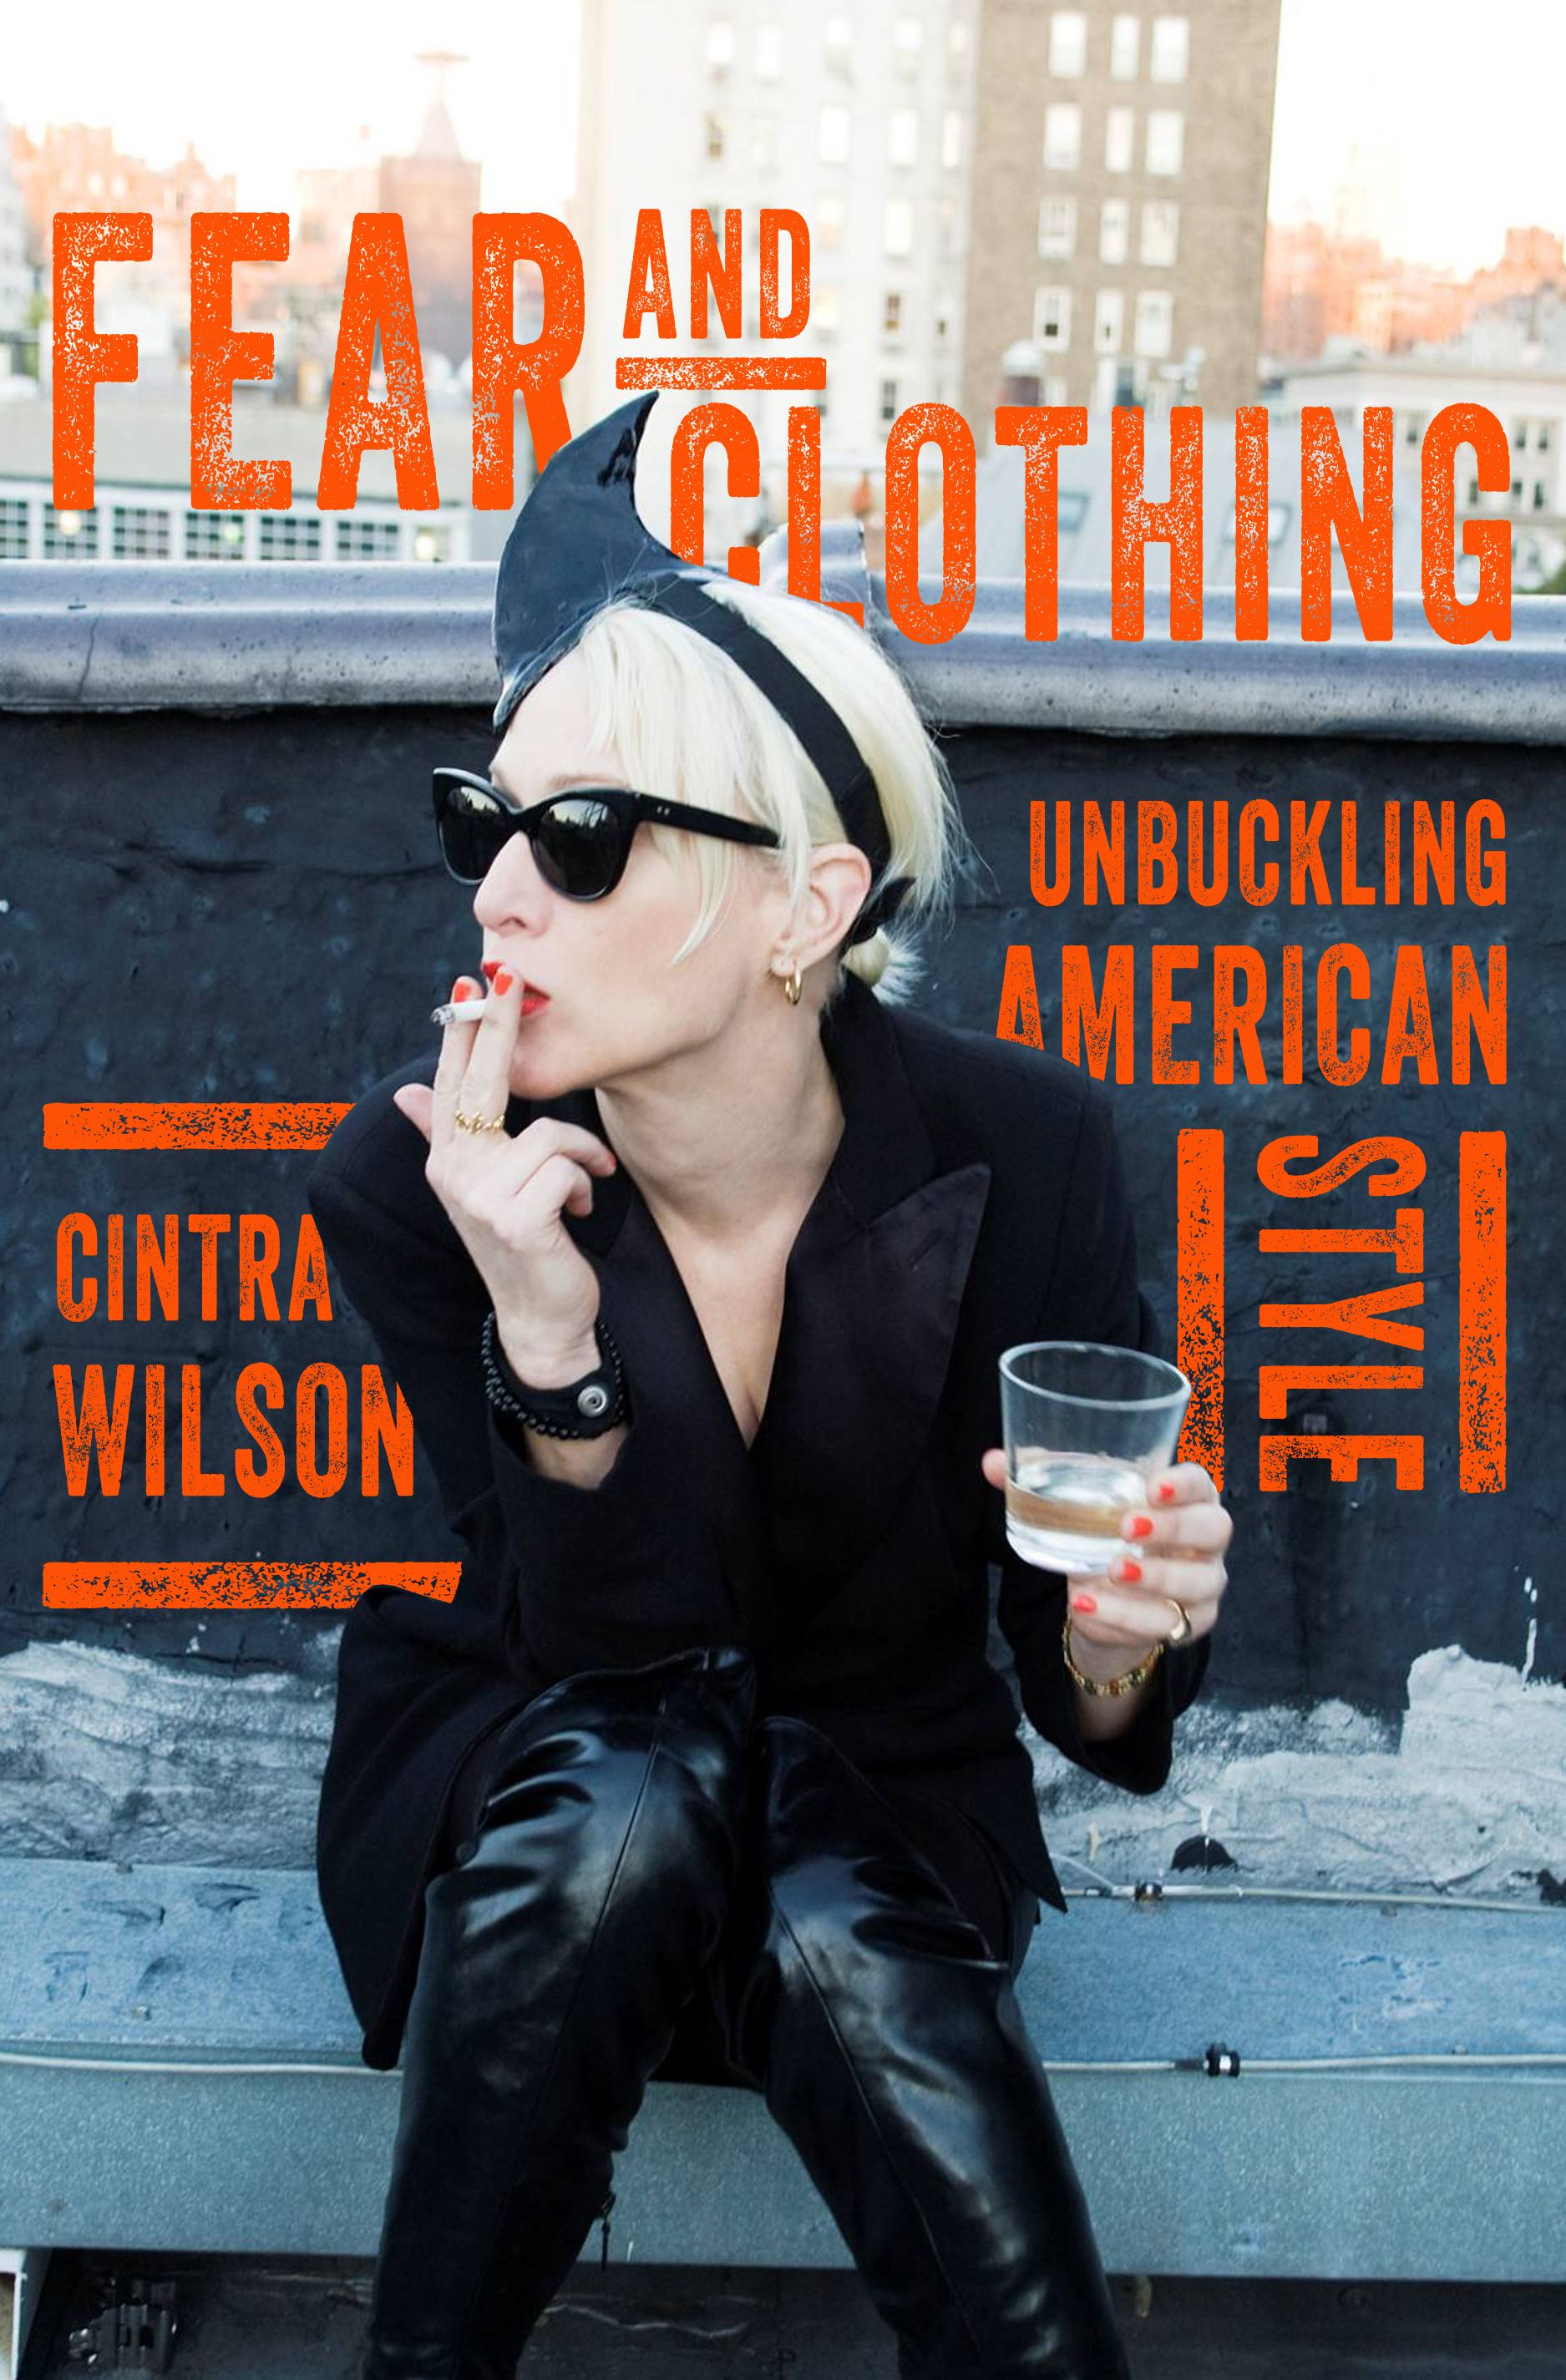 """Fear and Clothing: Unbuckling American Style"" by Cintra Wilson c.2015, W.W. Norton$27.95 / $33.95 Canada336 pages"